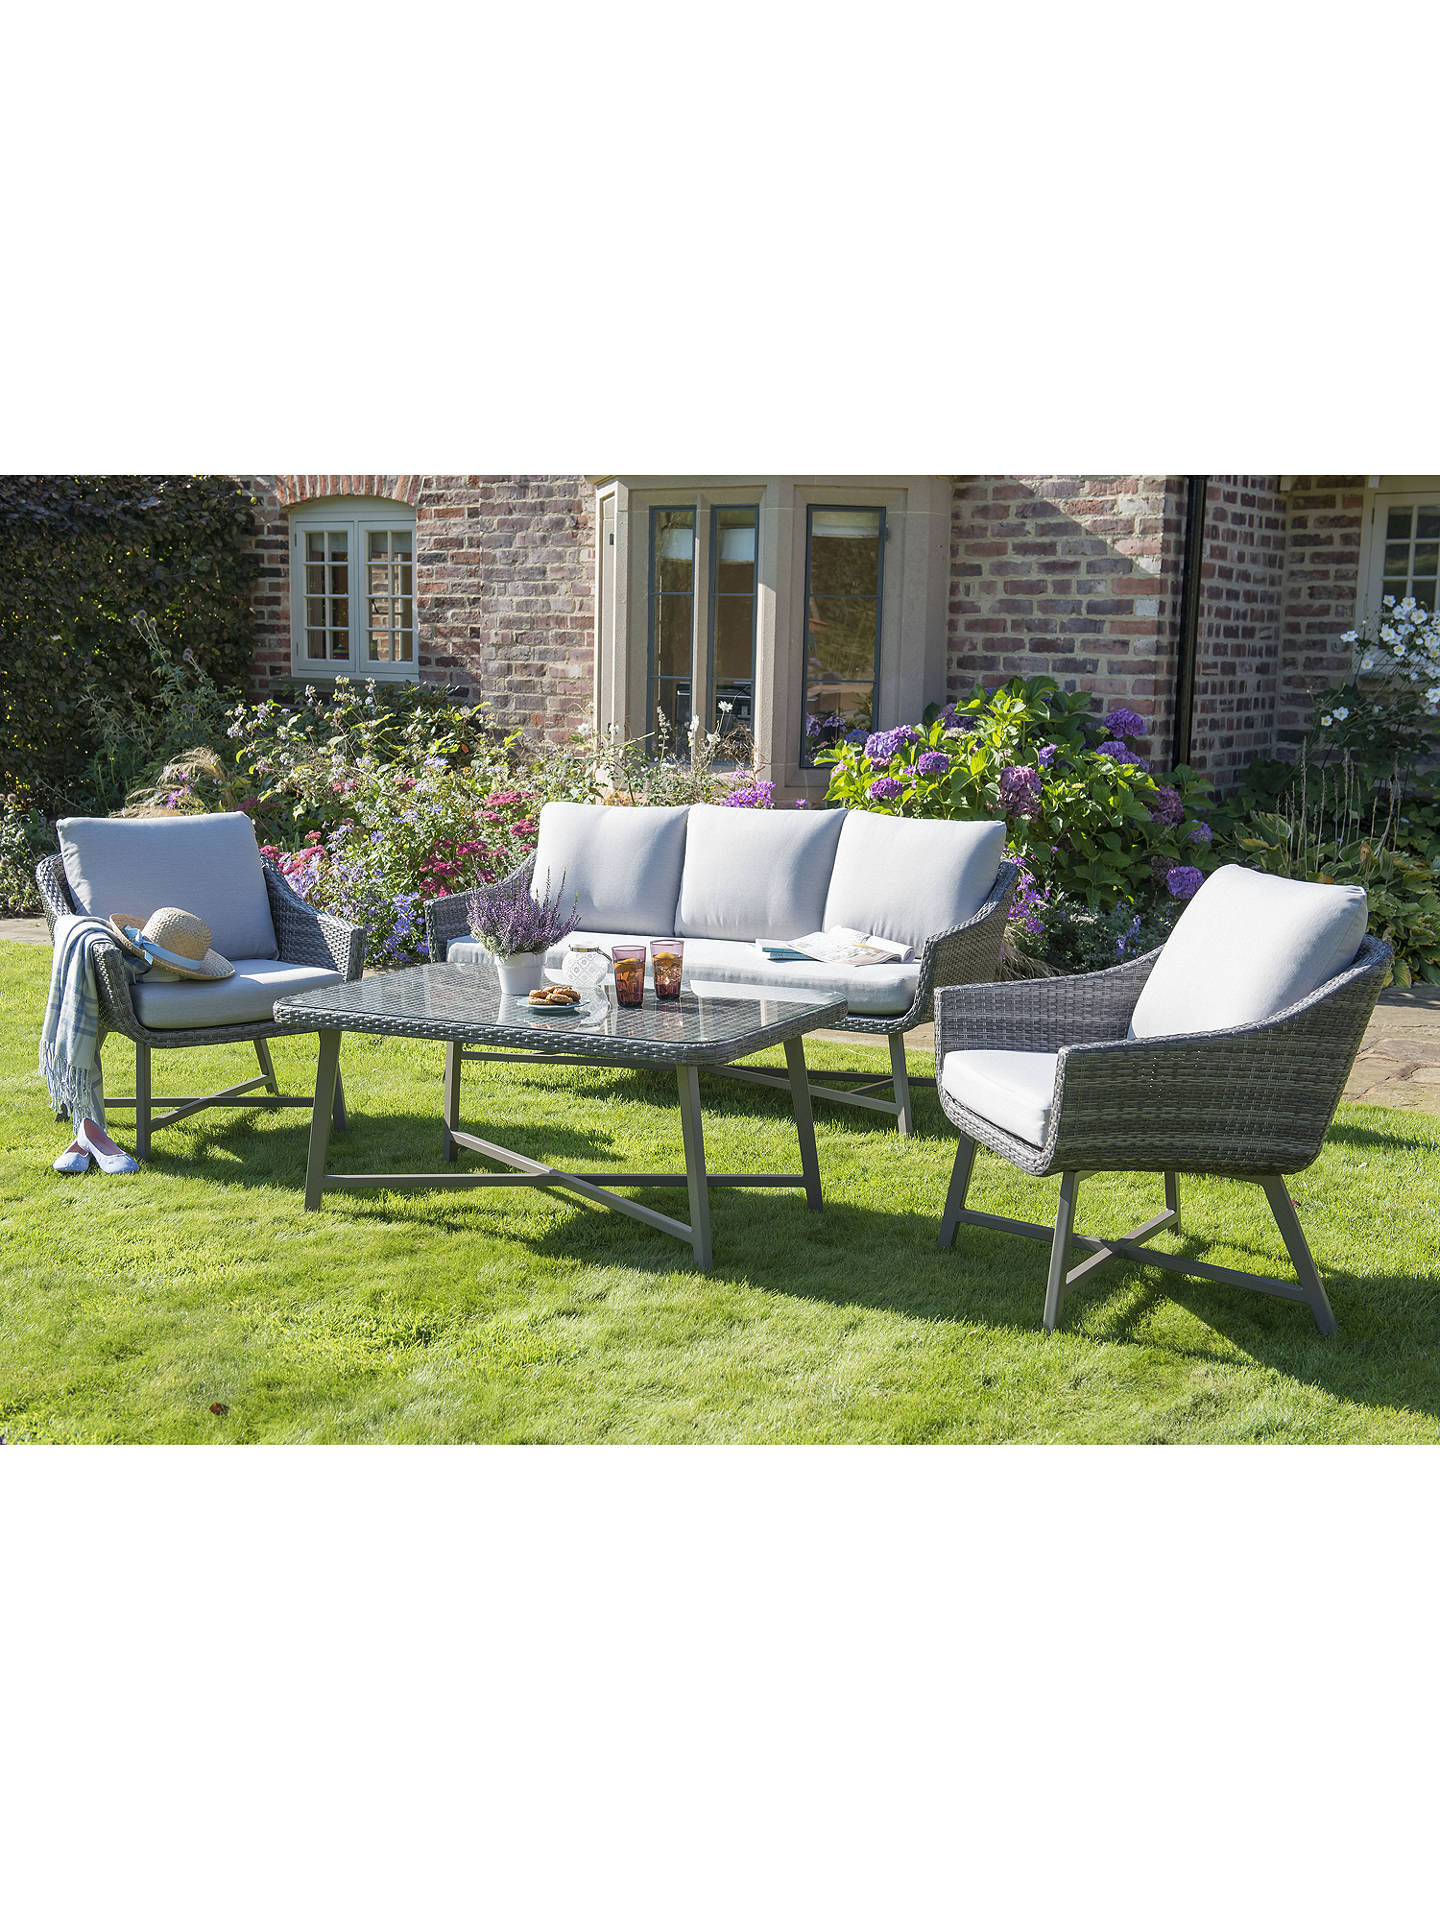 BuyKETTLER LaMode Lounge 3-Seater Garden Sofa with Cushions Online at johnlewis.com